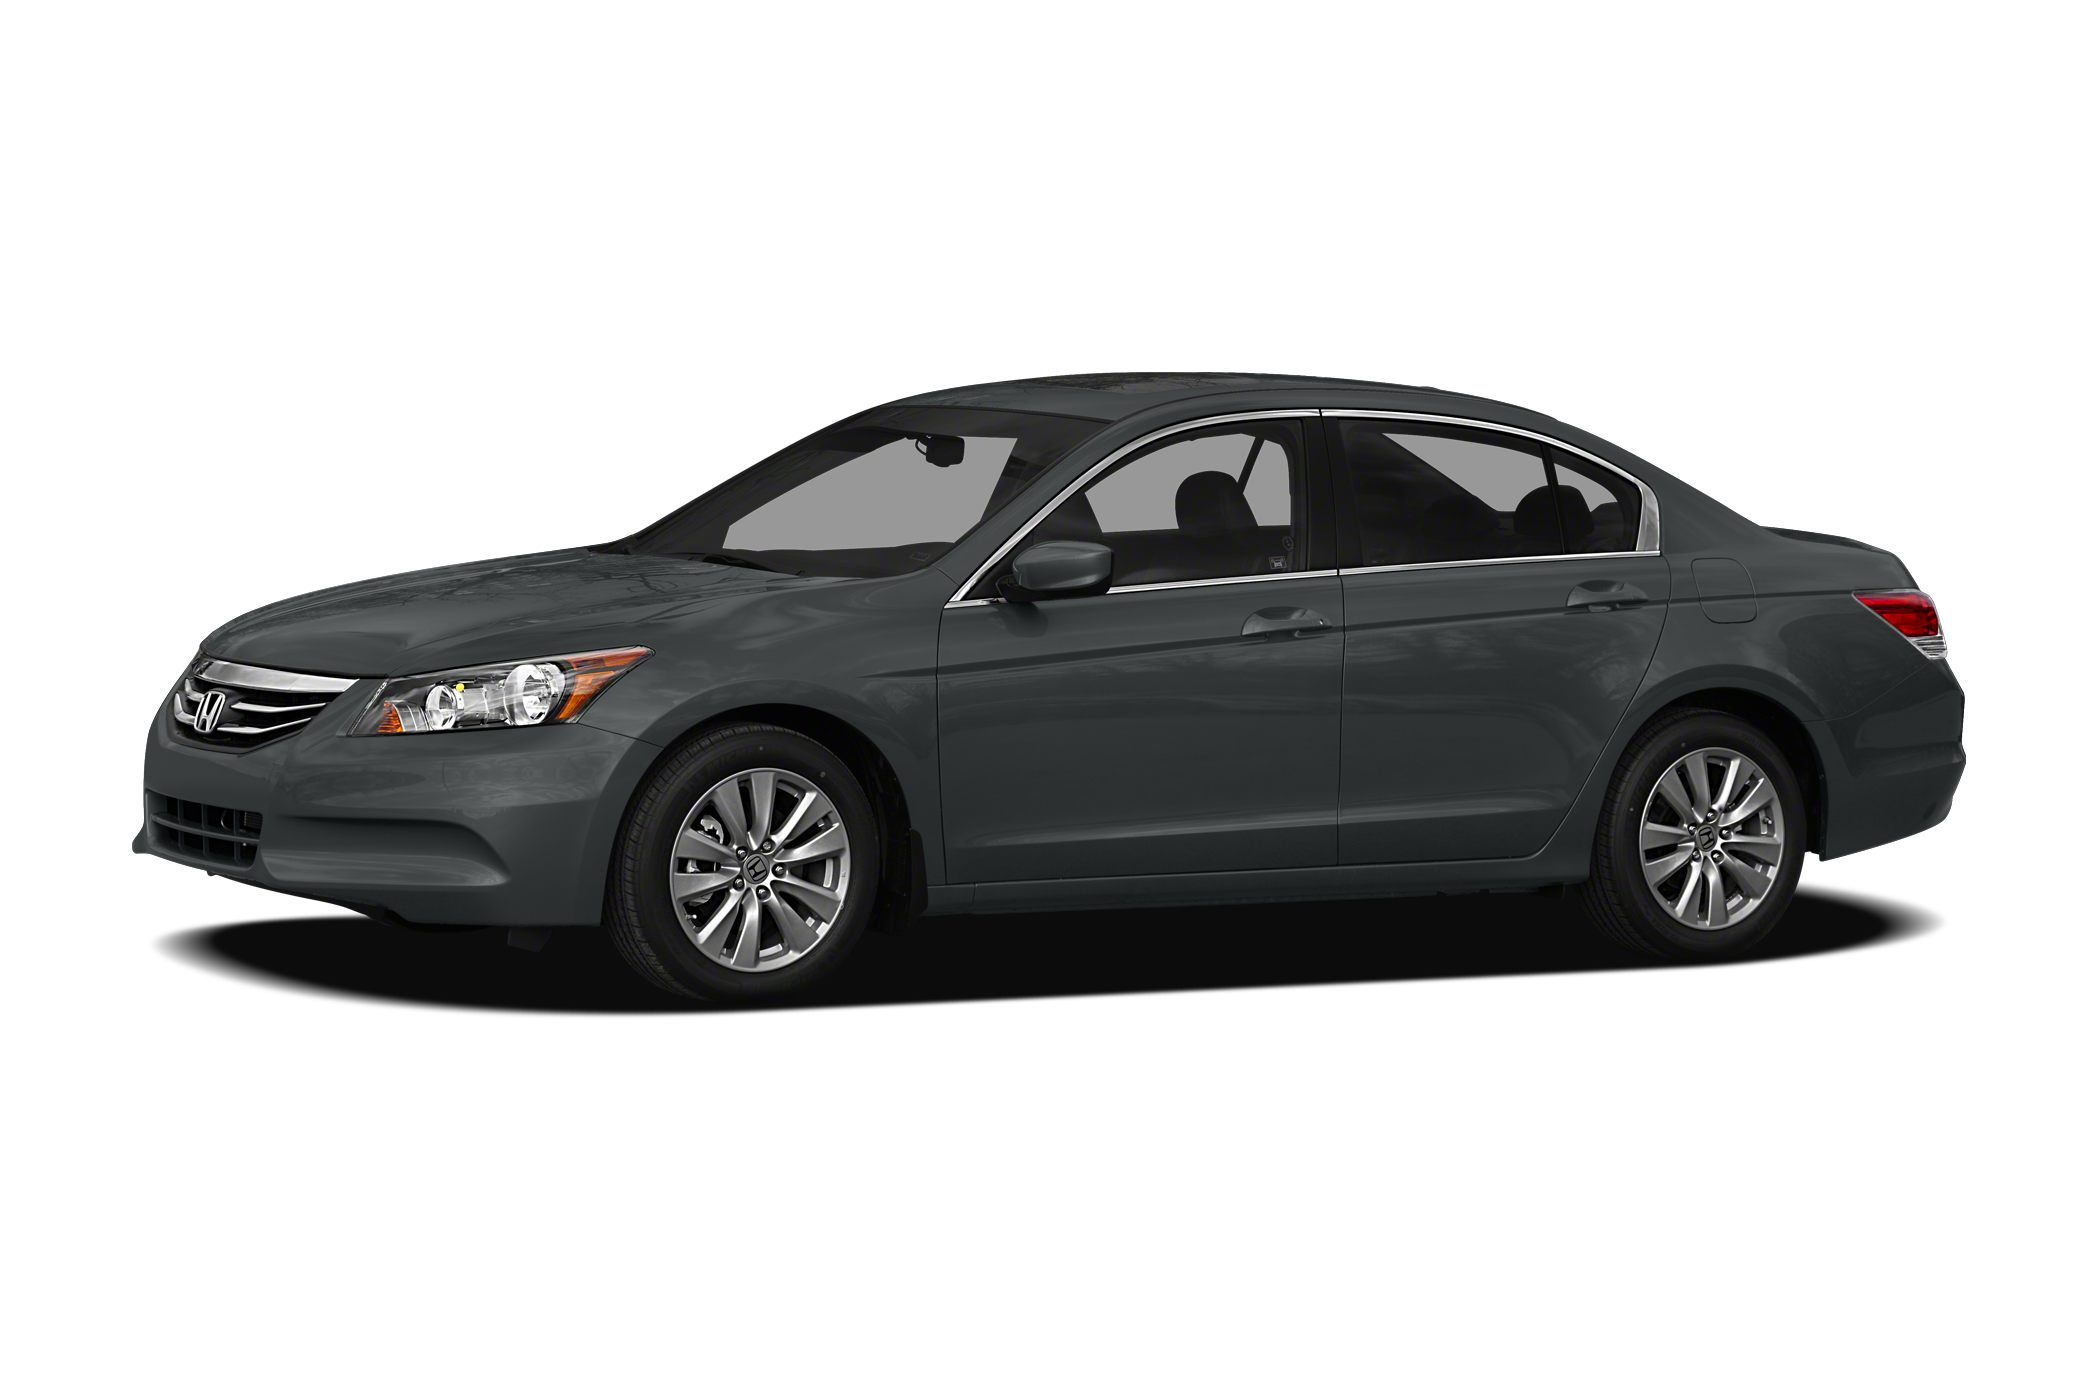 2011 Honda Accord LX Sedan for sale in Beckley for $16,688 with 44,331 miles.